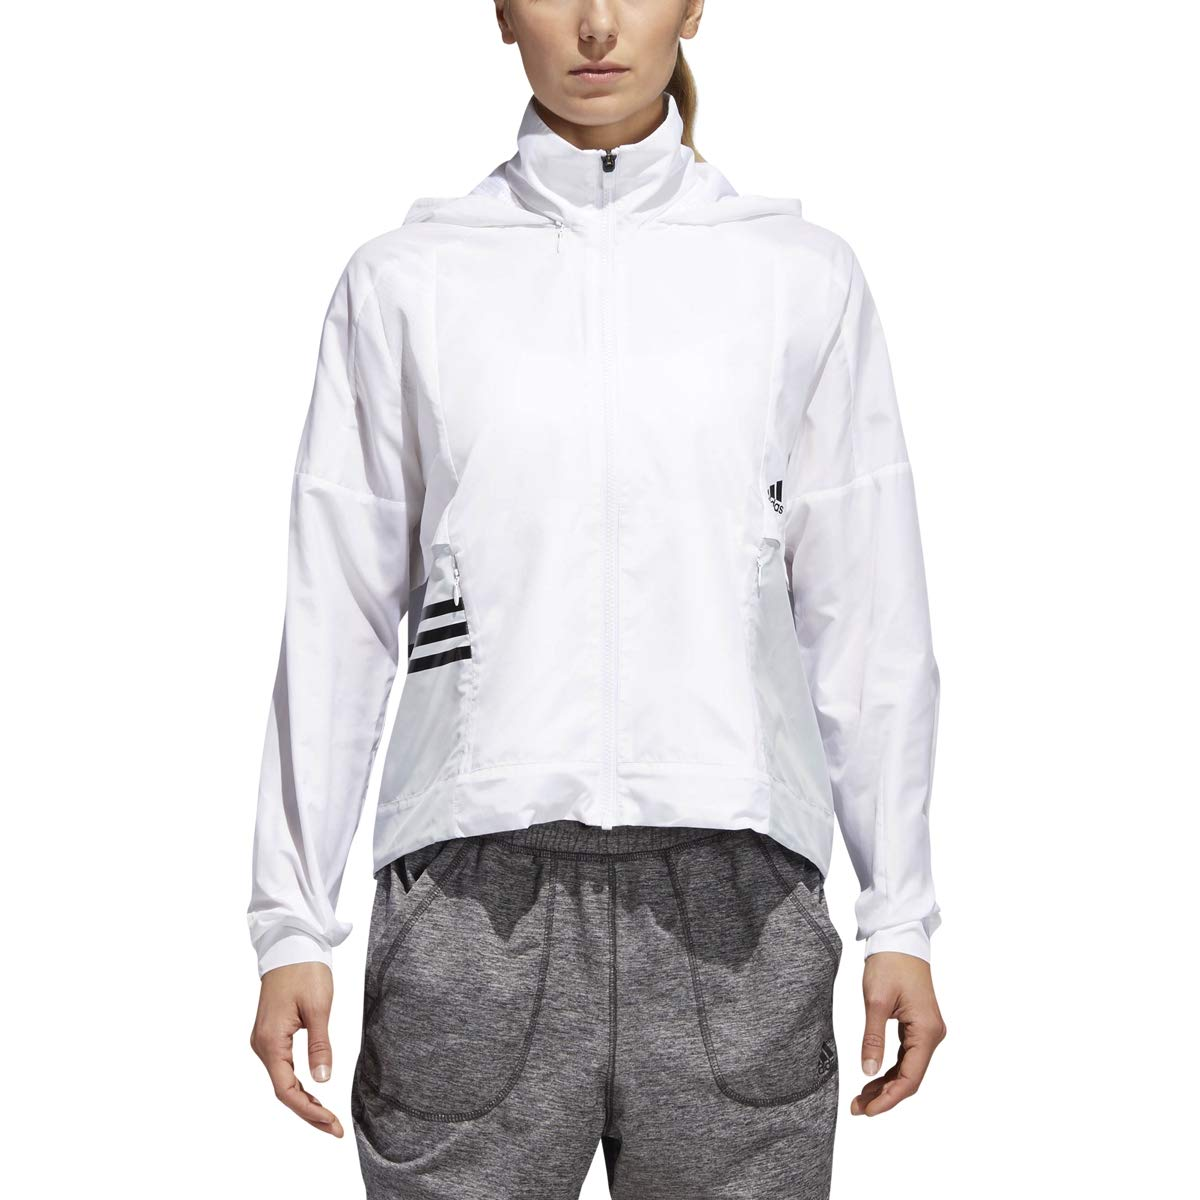 blanc-Clear gris-noir L adidas Athletics ID tissé Coque